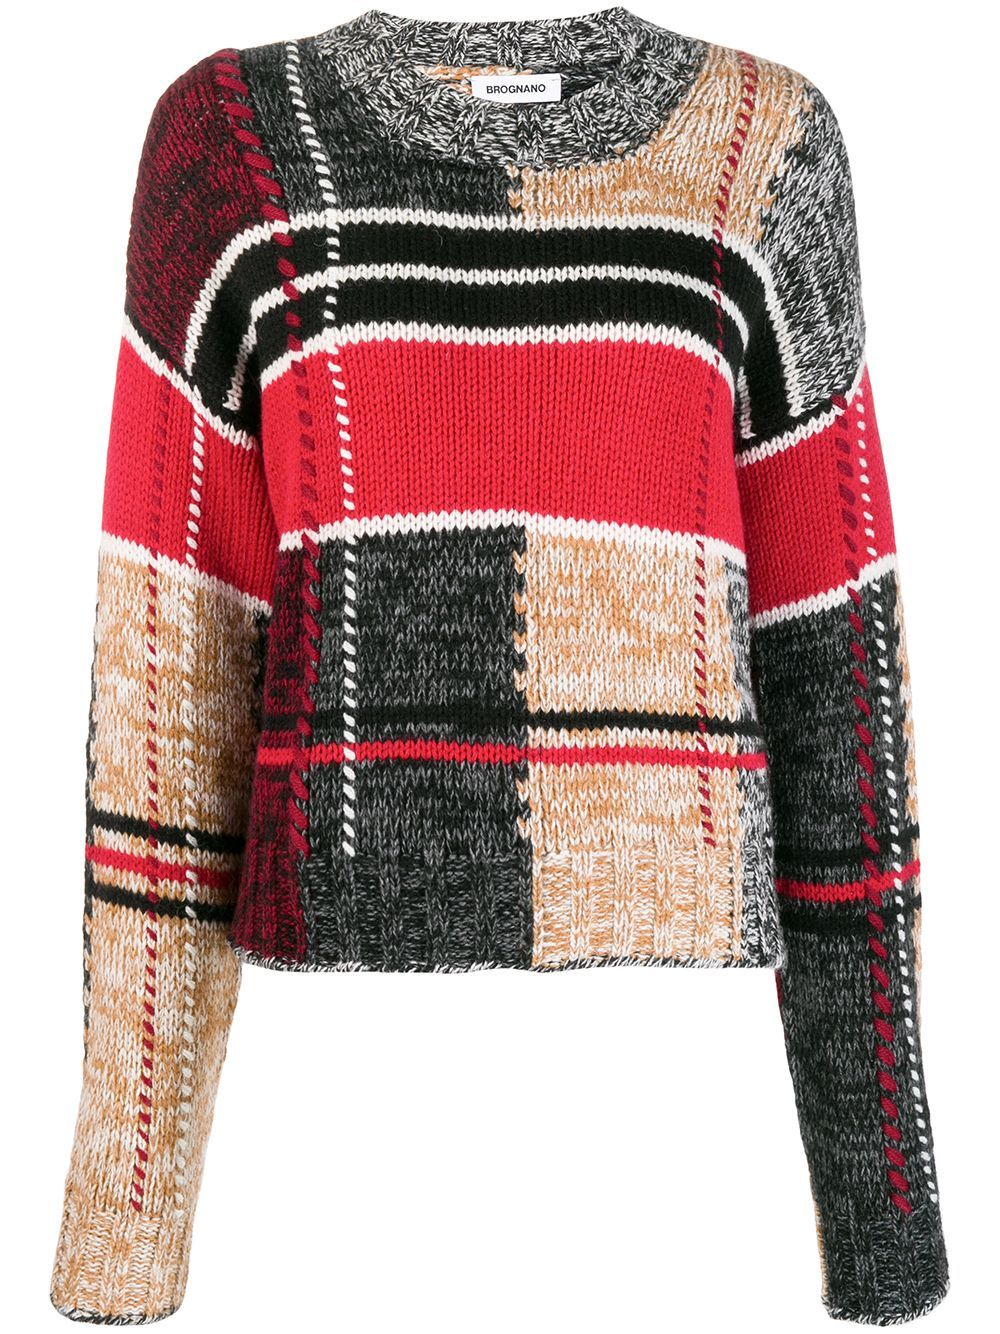 Brognano patchwork knit jumper - NEUTRALS